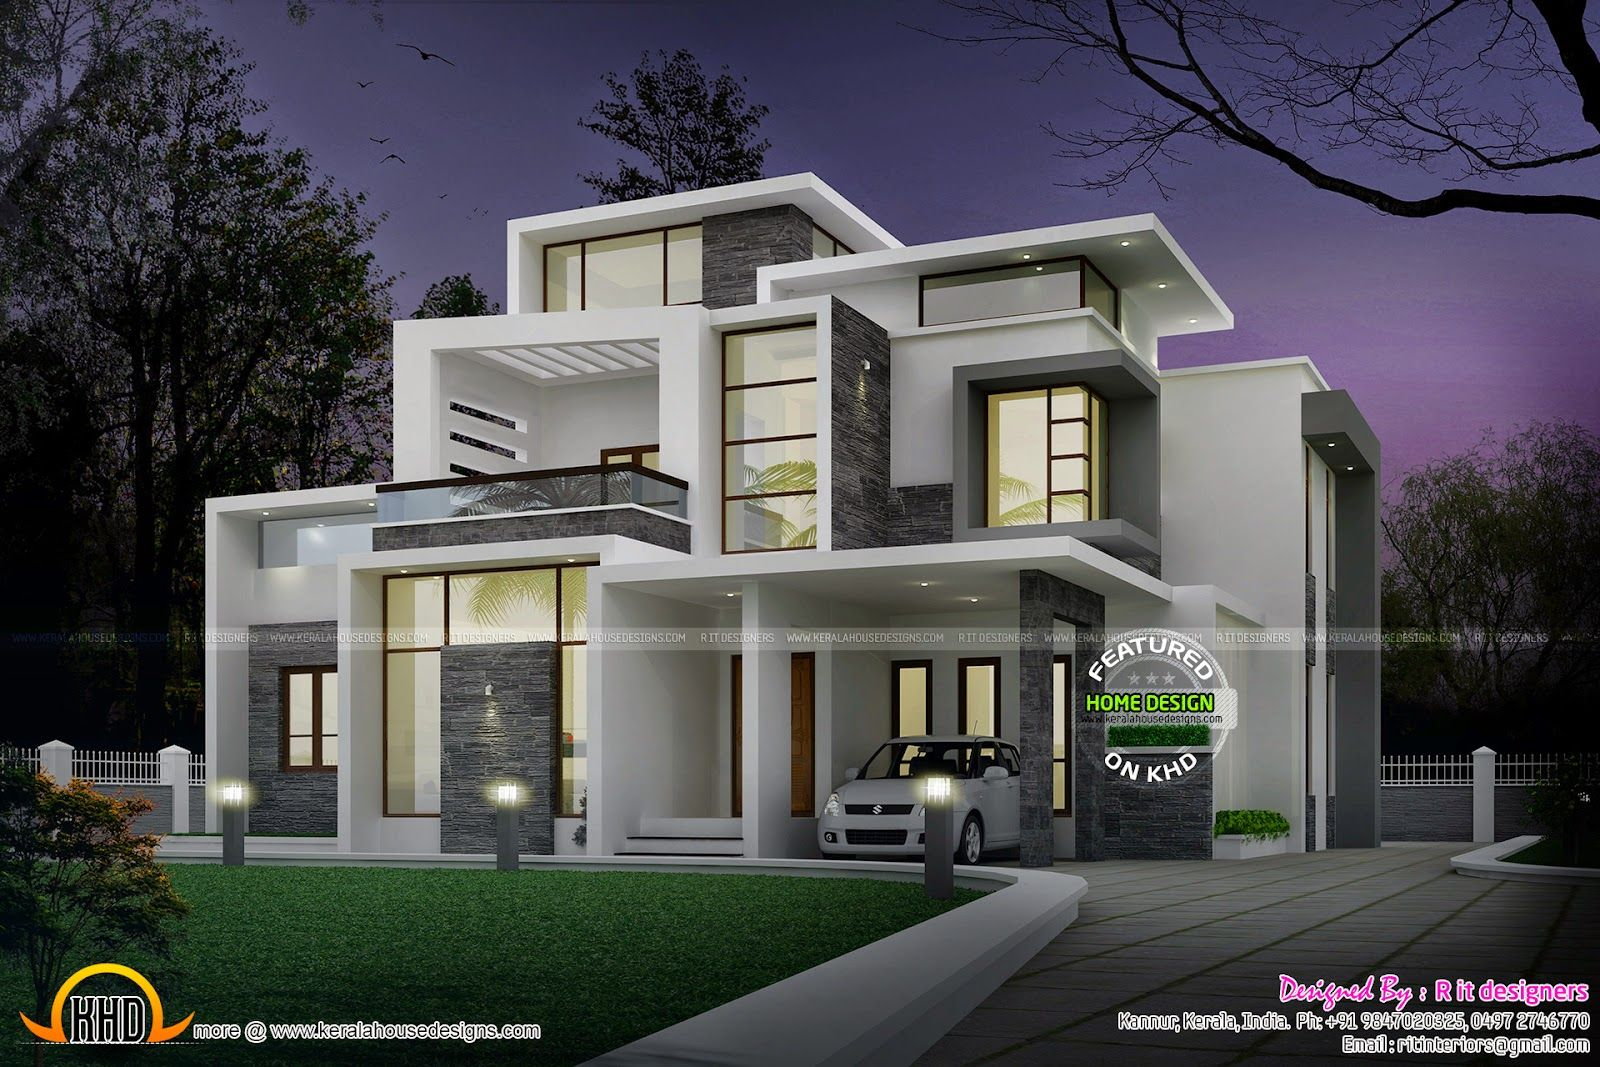 Grand contemporary home design kerala home design and for Contemporary home plans 2015